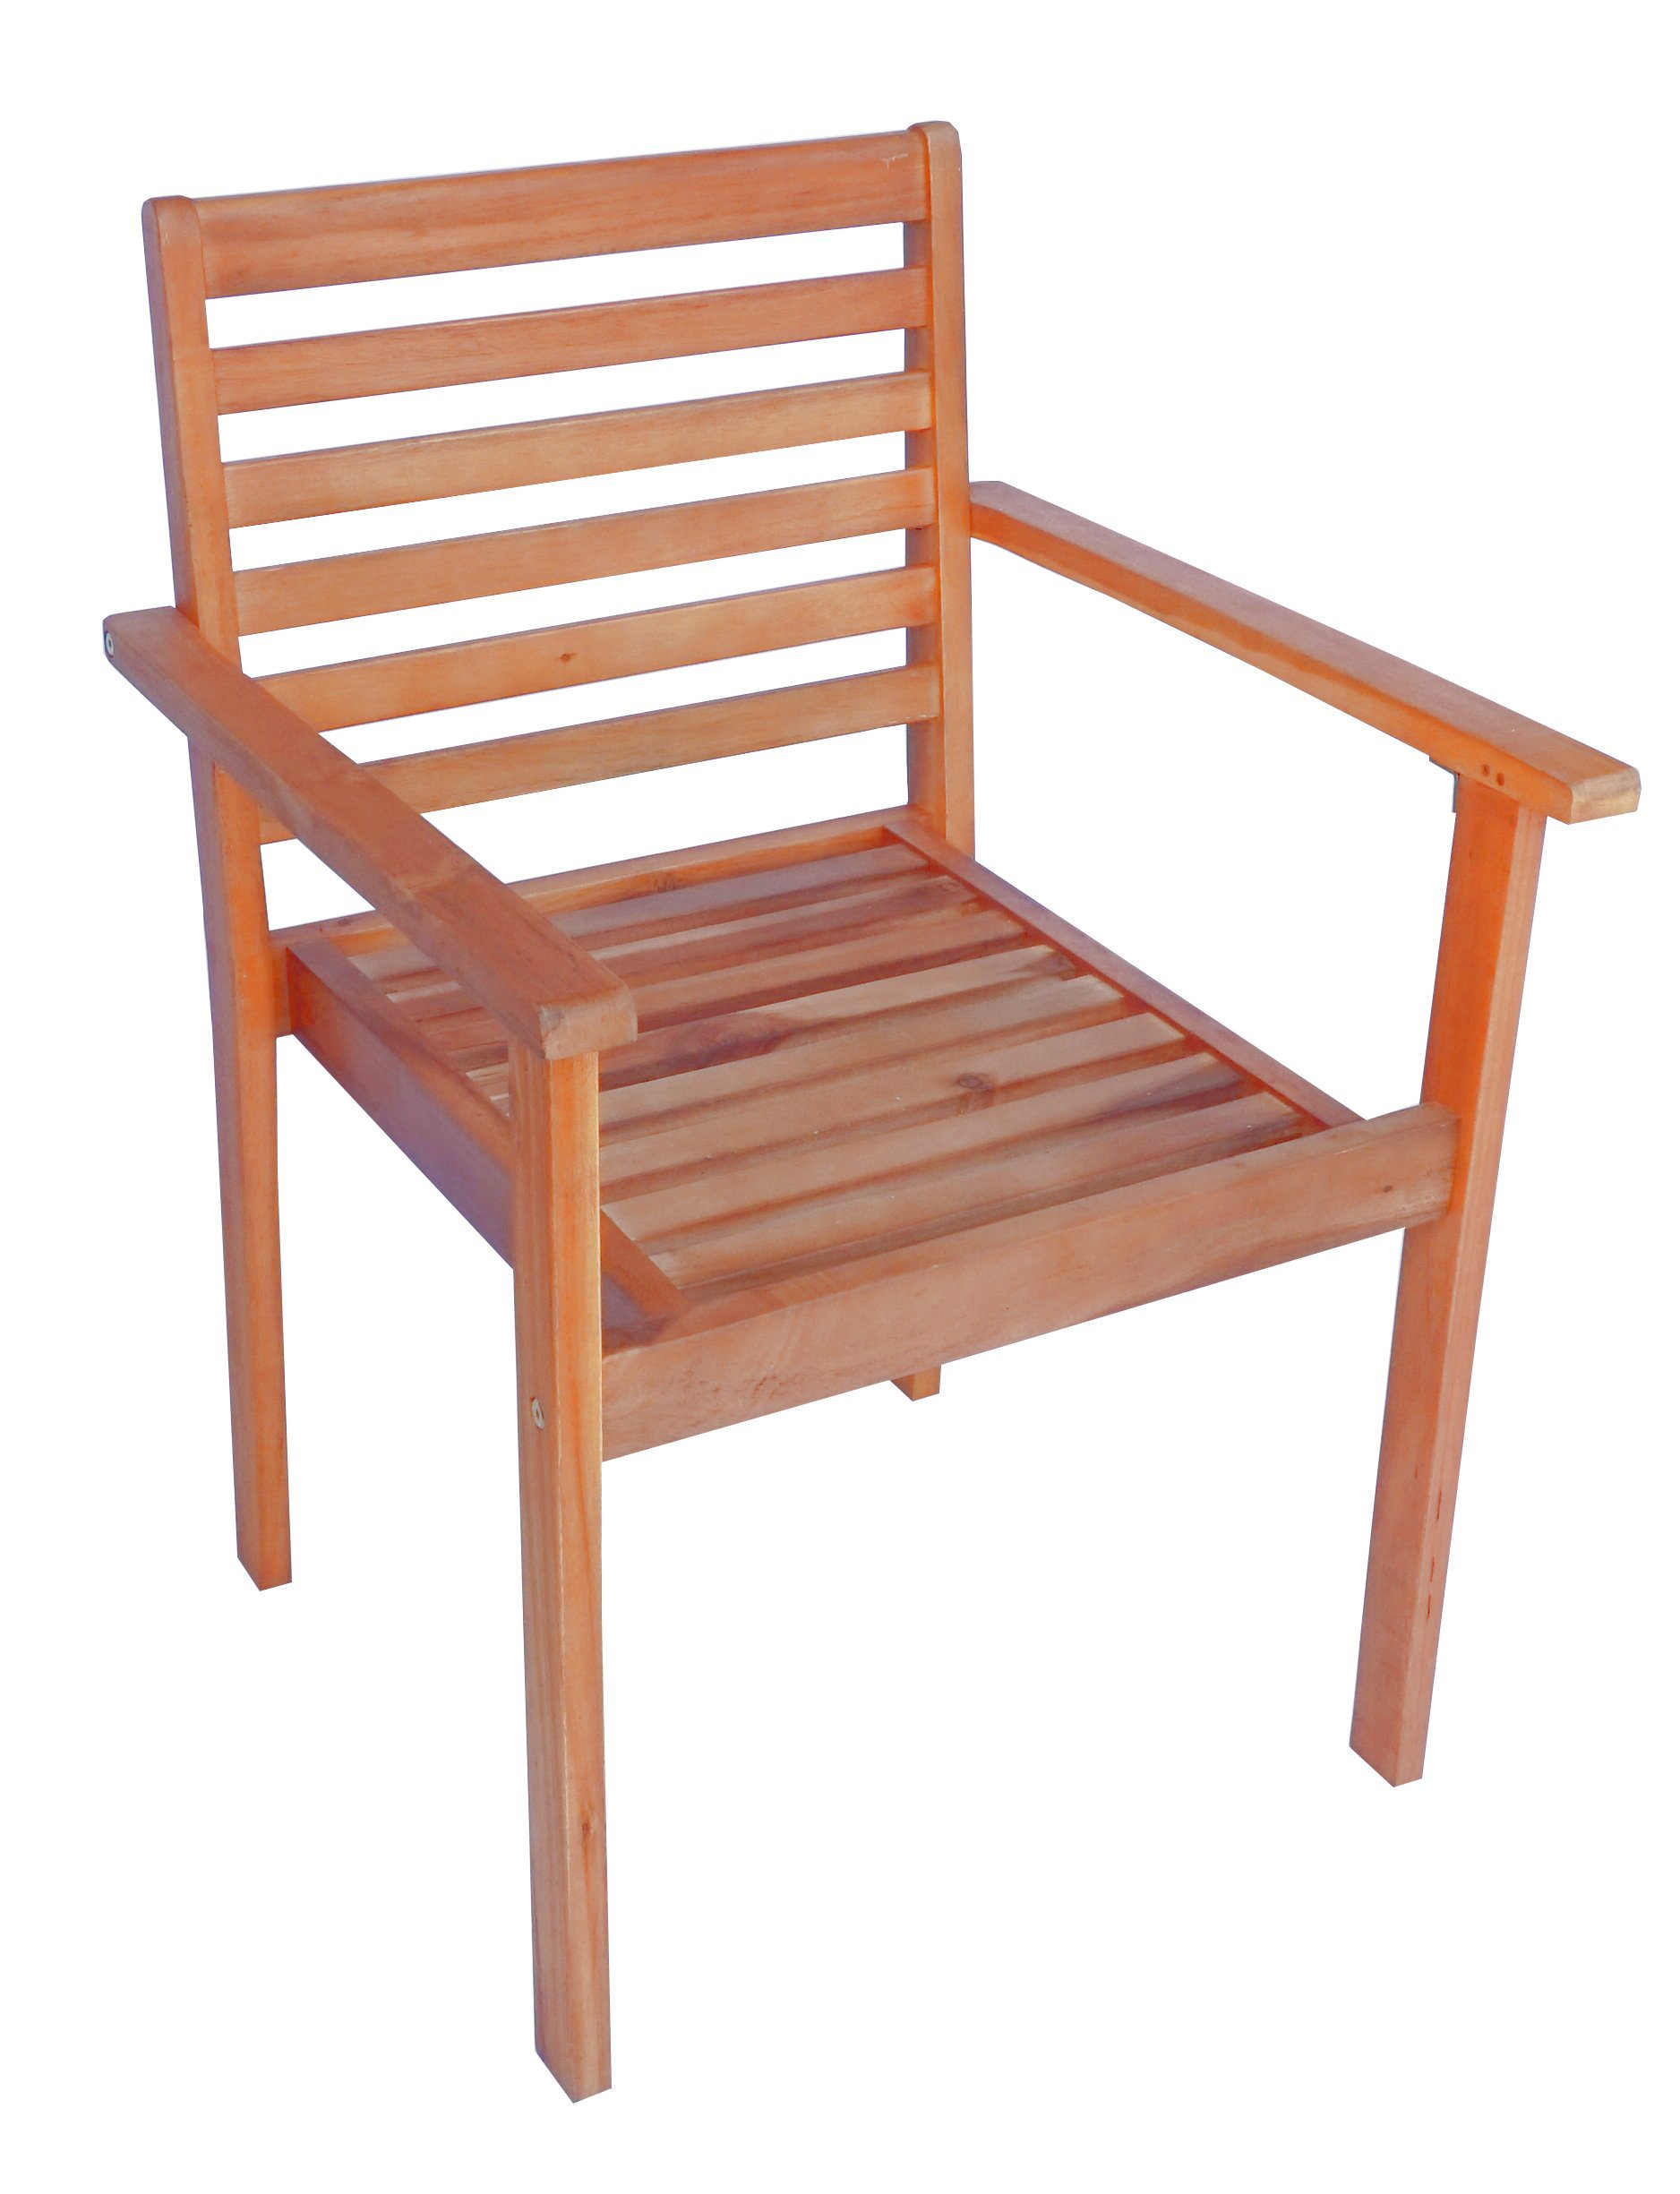 Zen Garden Eucalyptus Stackable Patio Outdoor Arm Chair, 23.25'' x 23.25'' x 34'', Teak Wood Finish, Teak Yellow